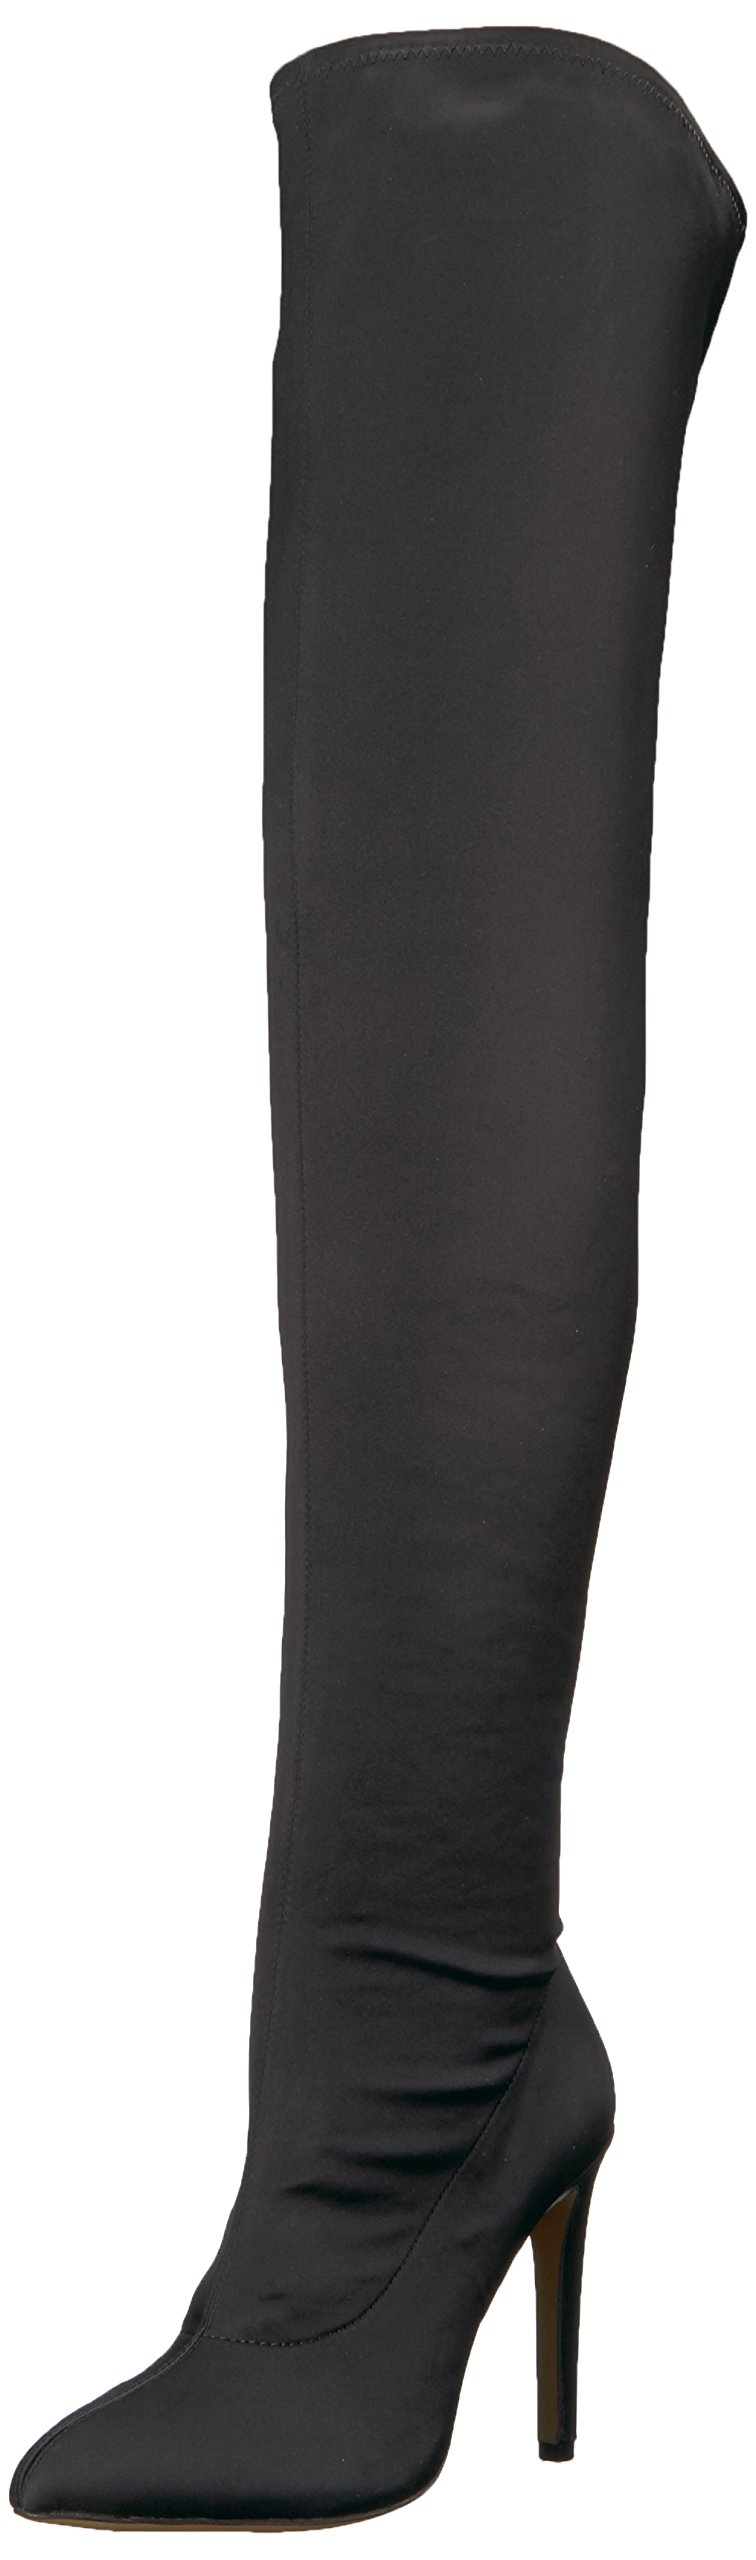 The Fix Women's Mia Pointed-Toe Thigh-High Sock Boot, Black, 8 B US